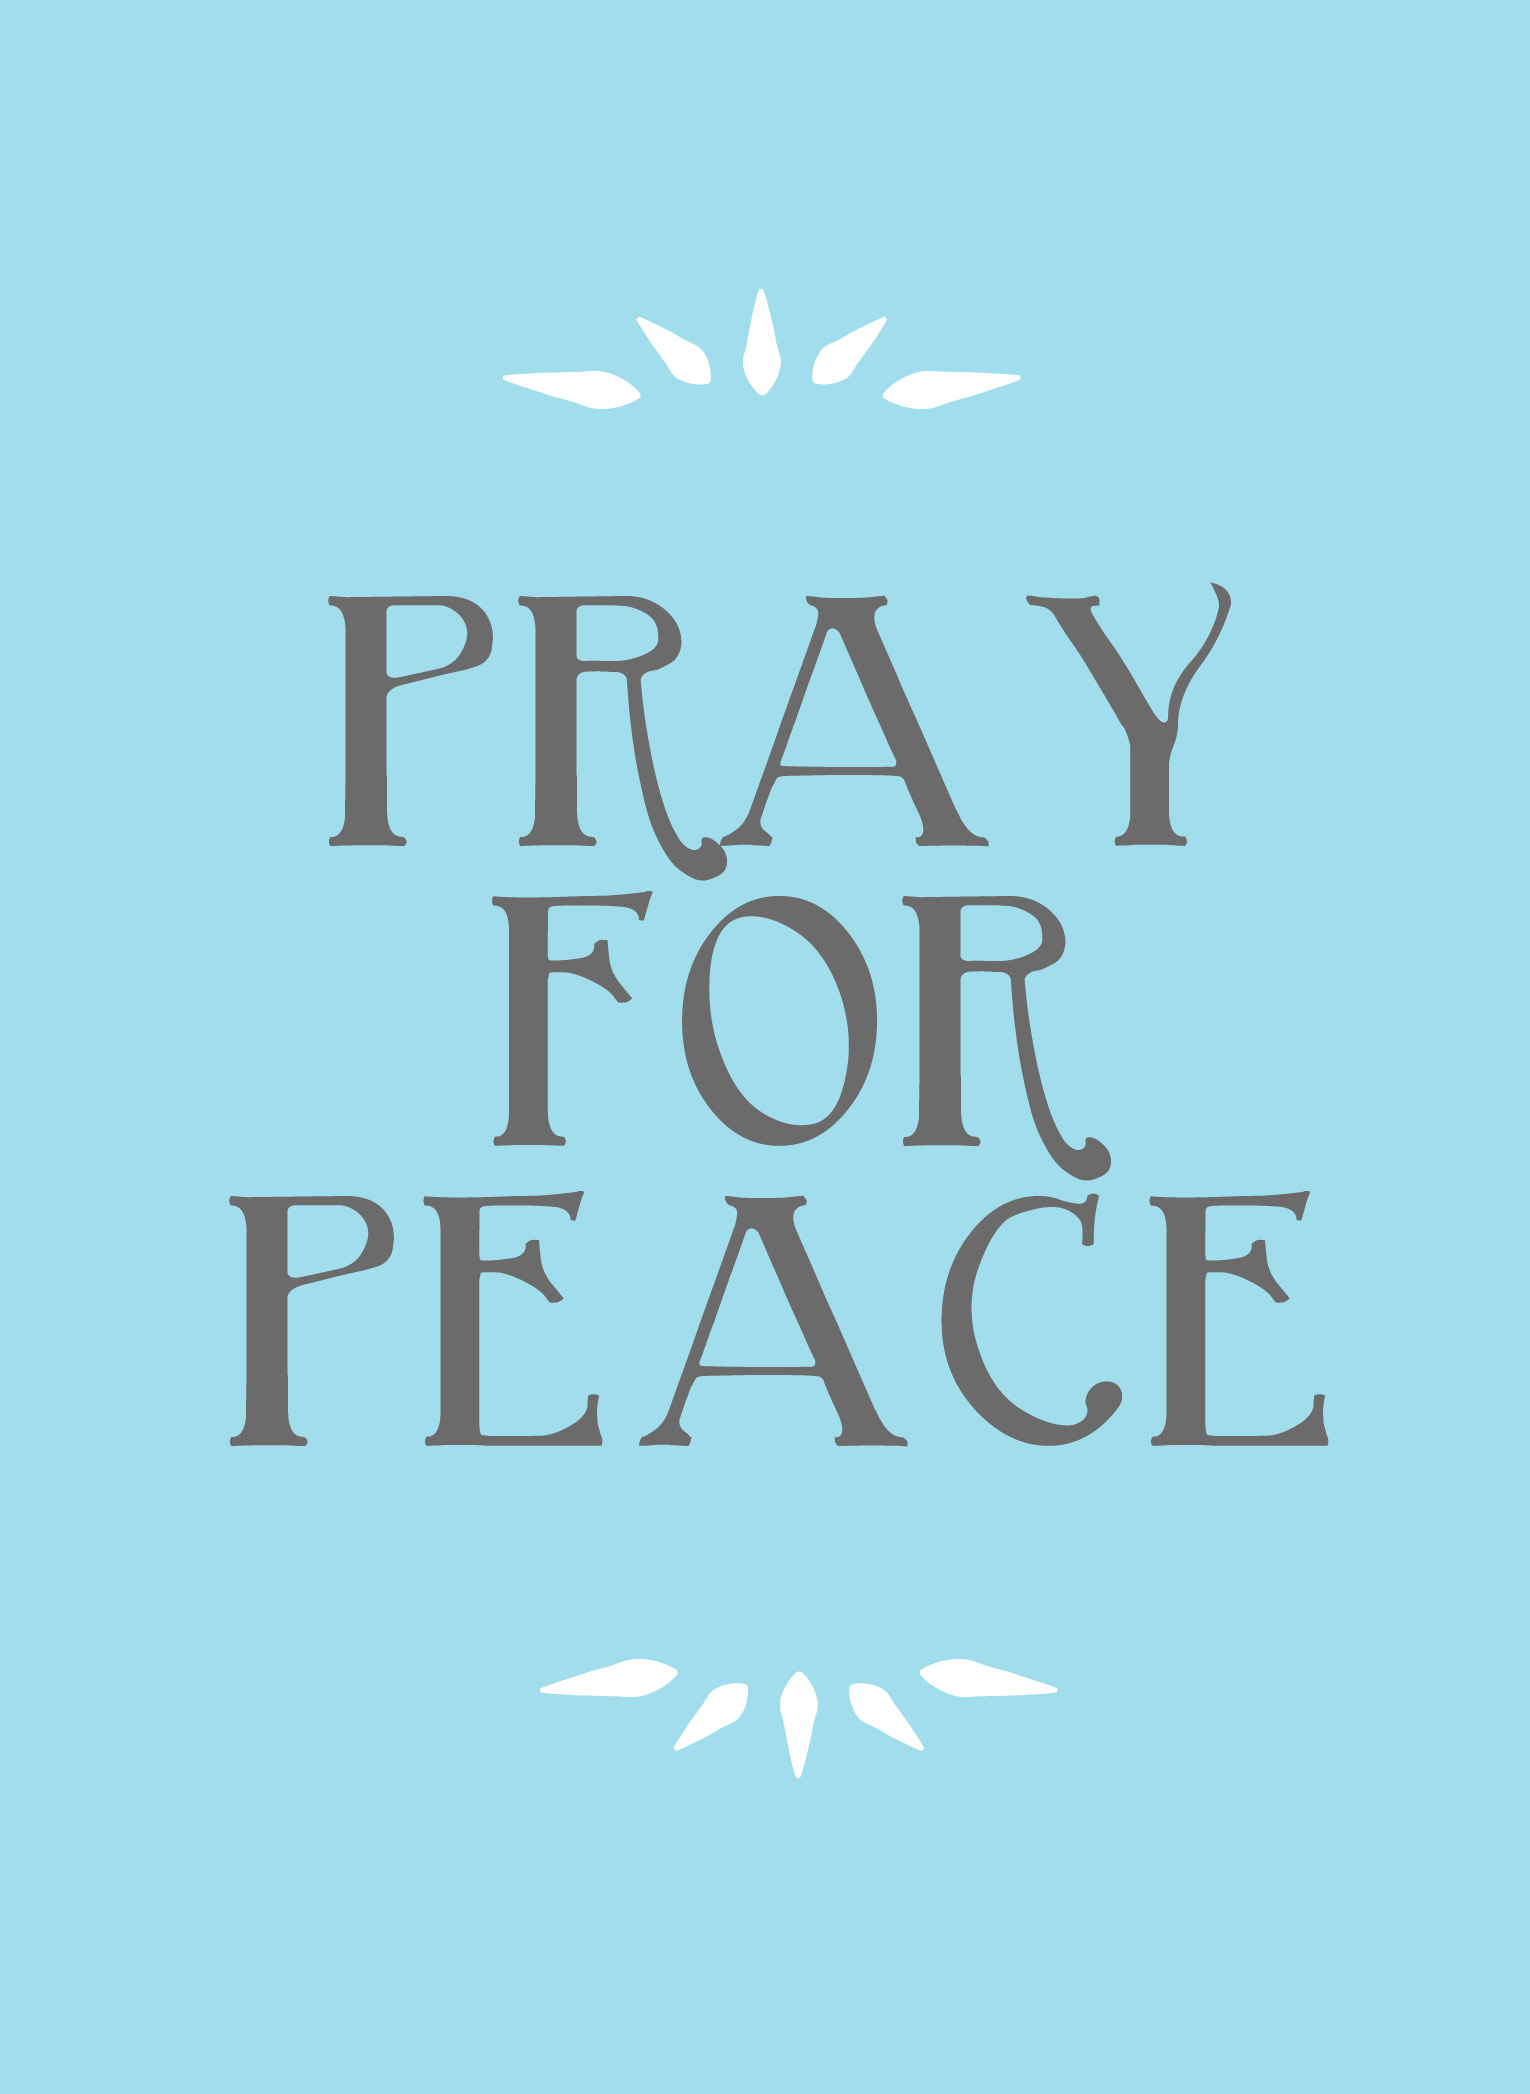 http://www.honeybearlane.com/wp-content/uploads/2012/12/pray-for-peace.jpg